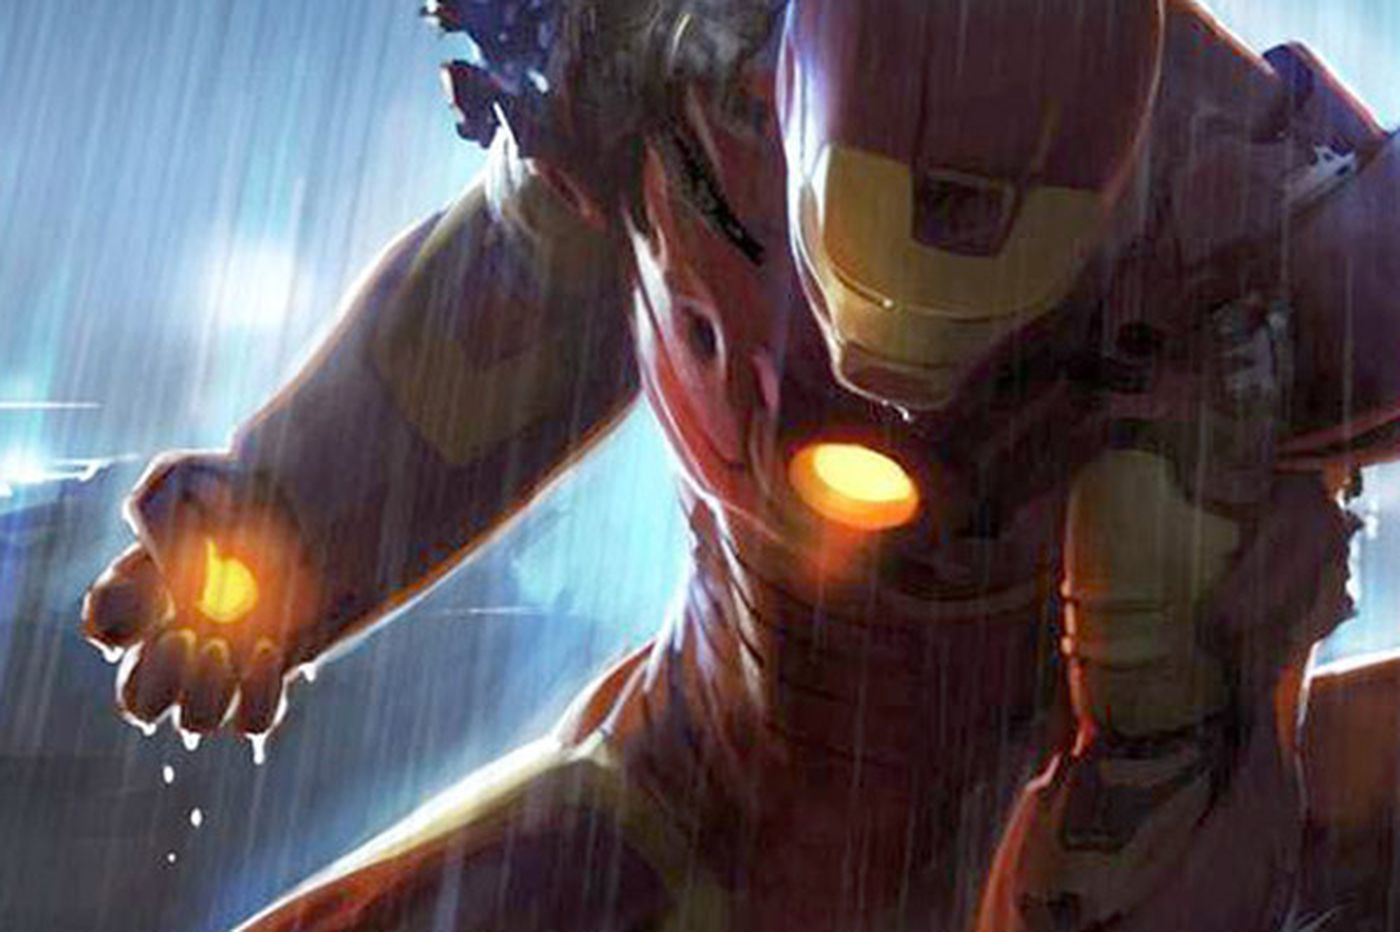 'Iron Man 3': PTSD and hubris prove Tony Stark is more man than robot